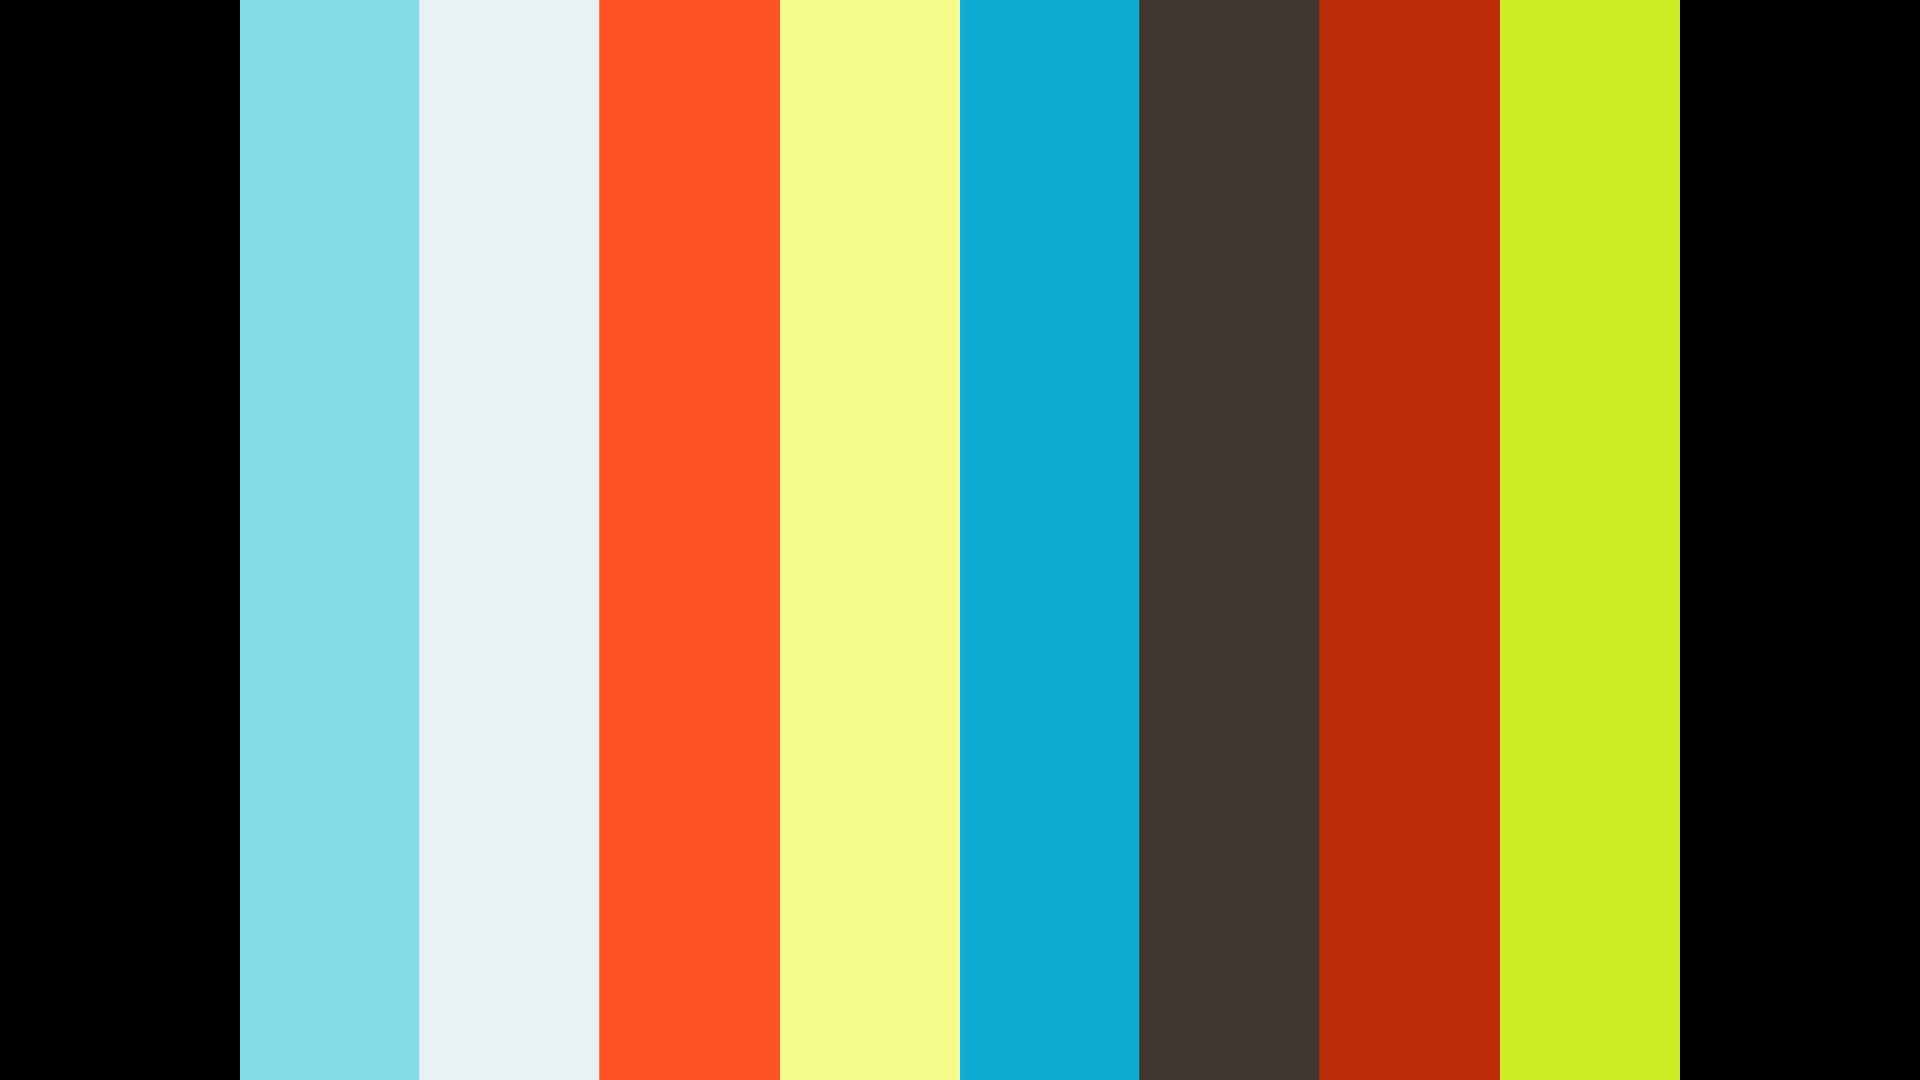 Marie_Thomas_CFAN Stories_Version 2